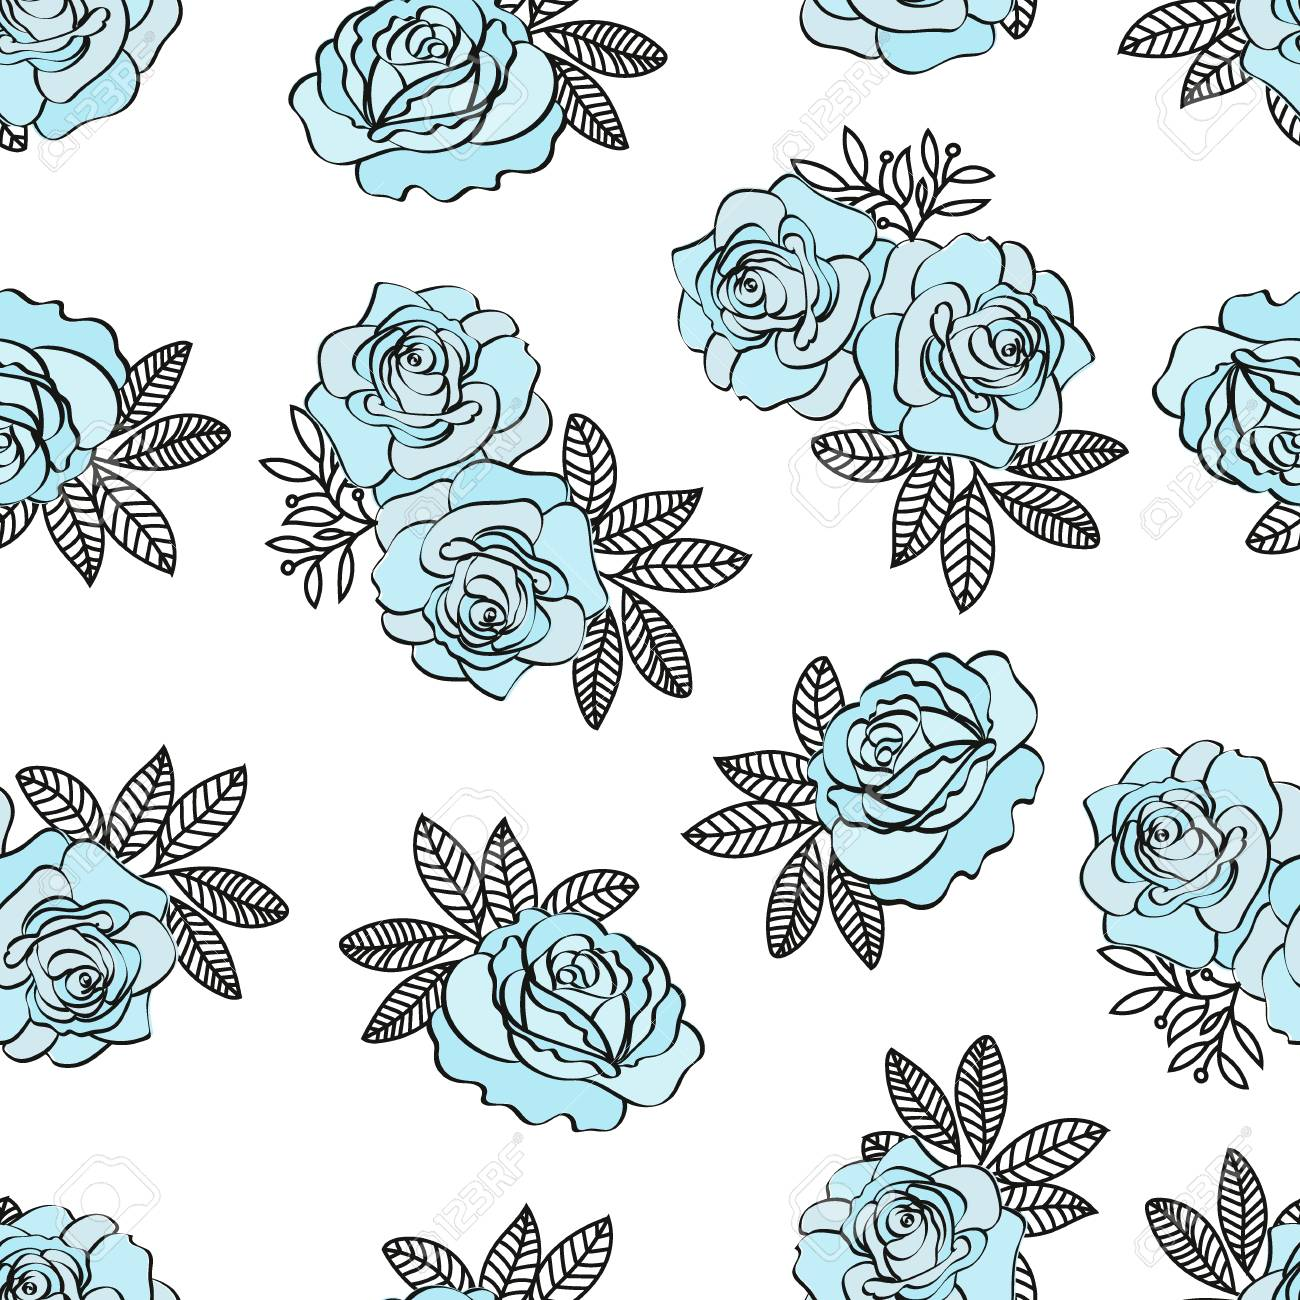 BLUE ROSE PATTERN Wedding Flower Seamless Pattern Vector Illustration for Print, Fabric and Digital Paper. - 117953959